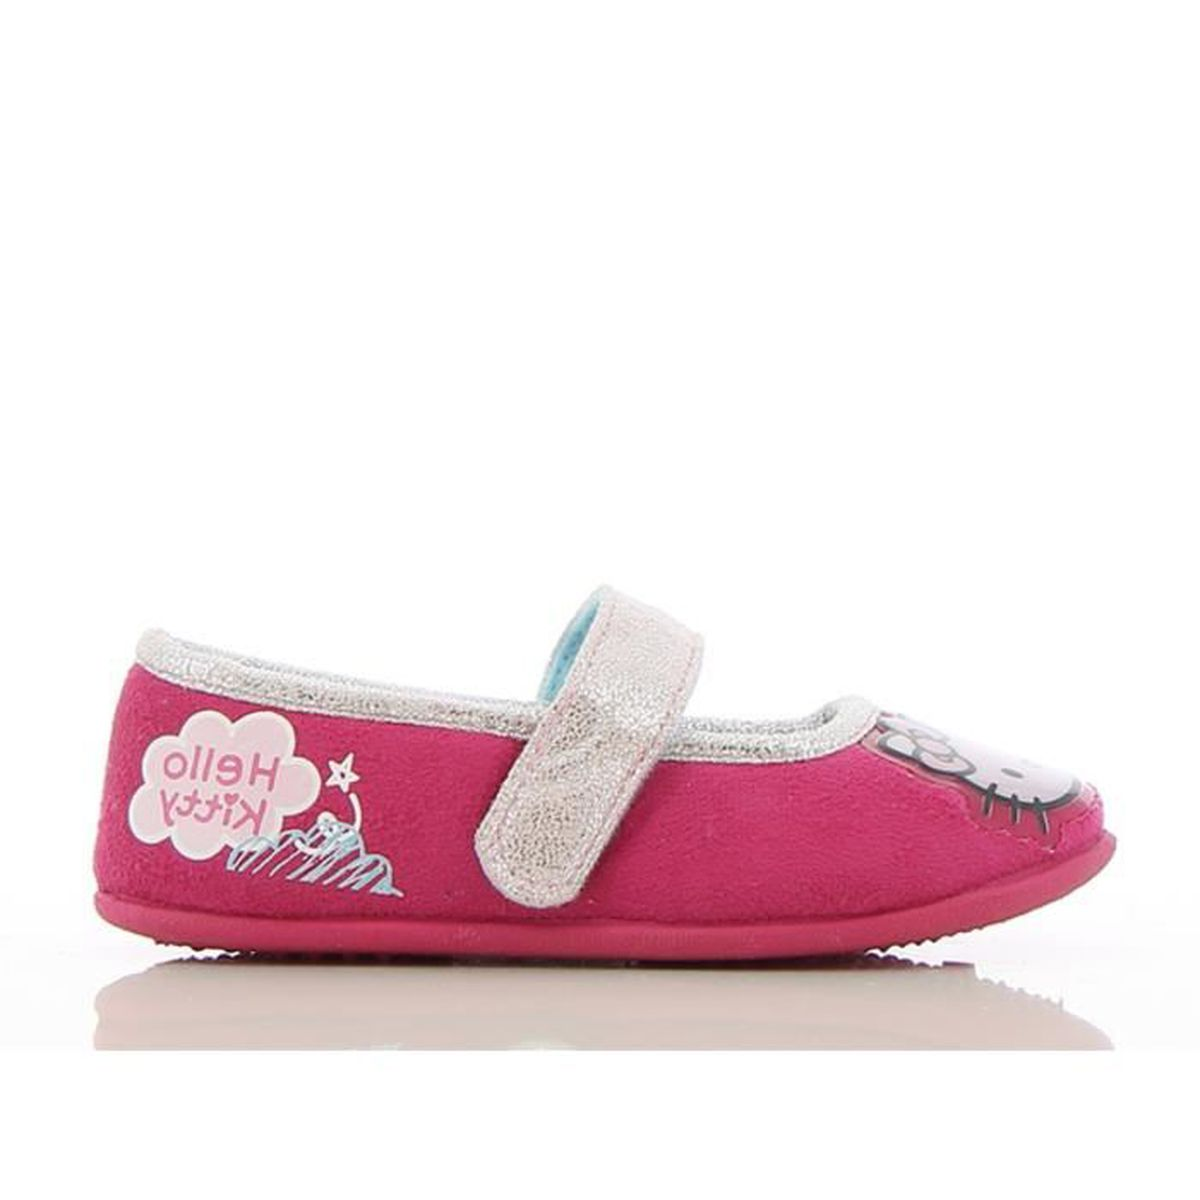 chaussures b b hello kitty achat vente chaussures b b hello kitty pas cher cdiscount. Black Bedroom Furniture Sets. Home Design Ideas